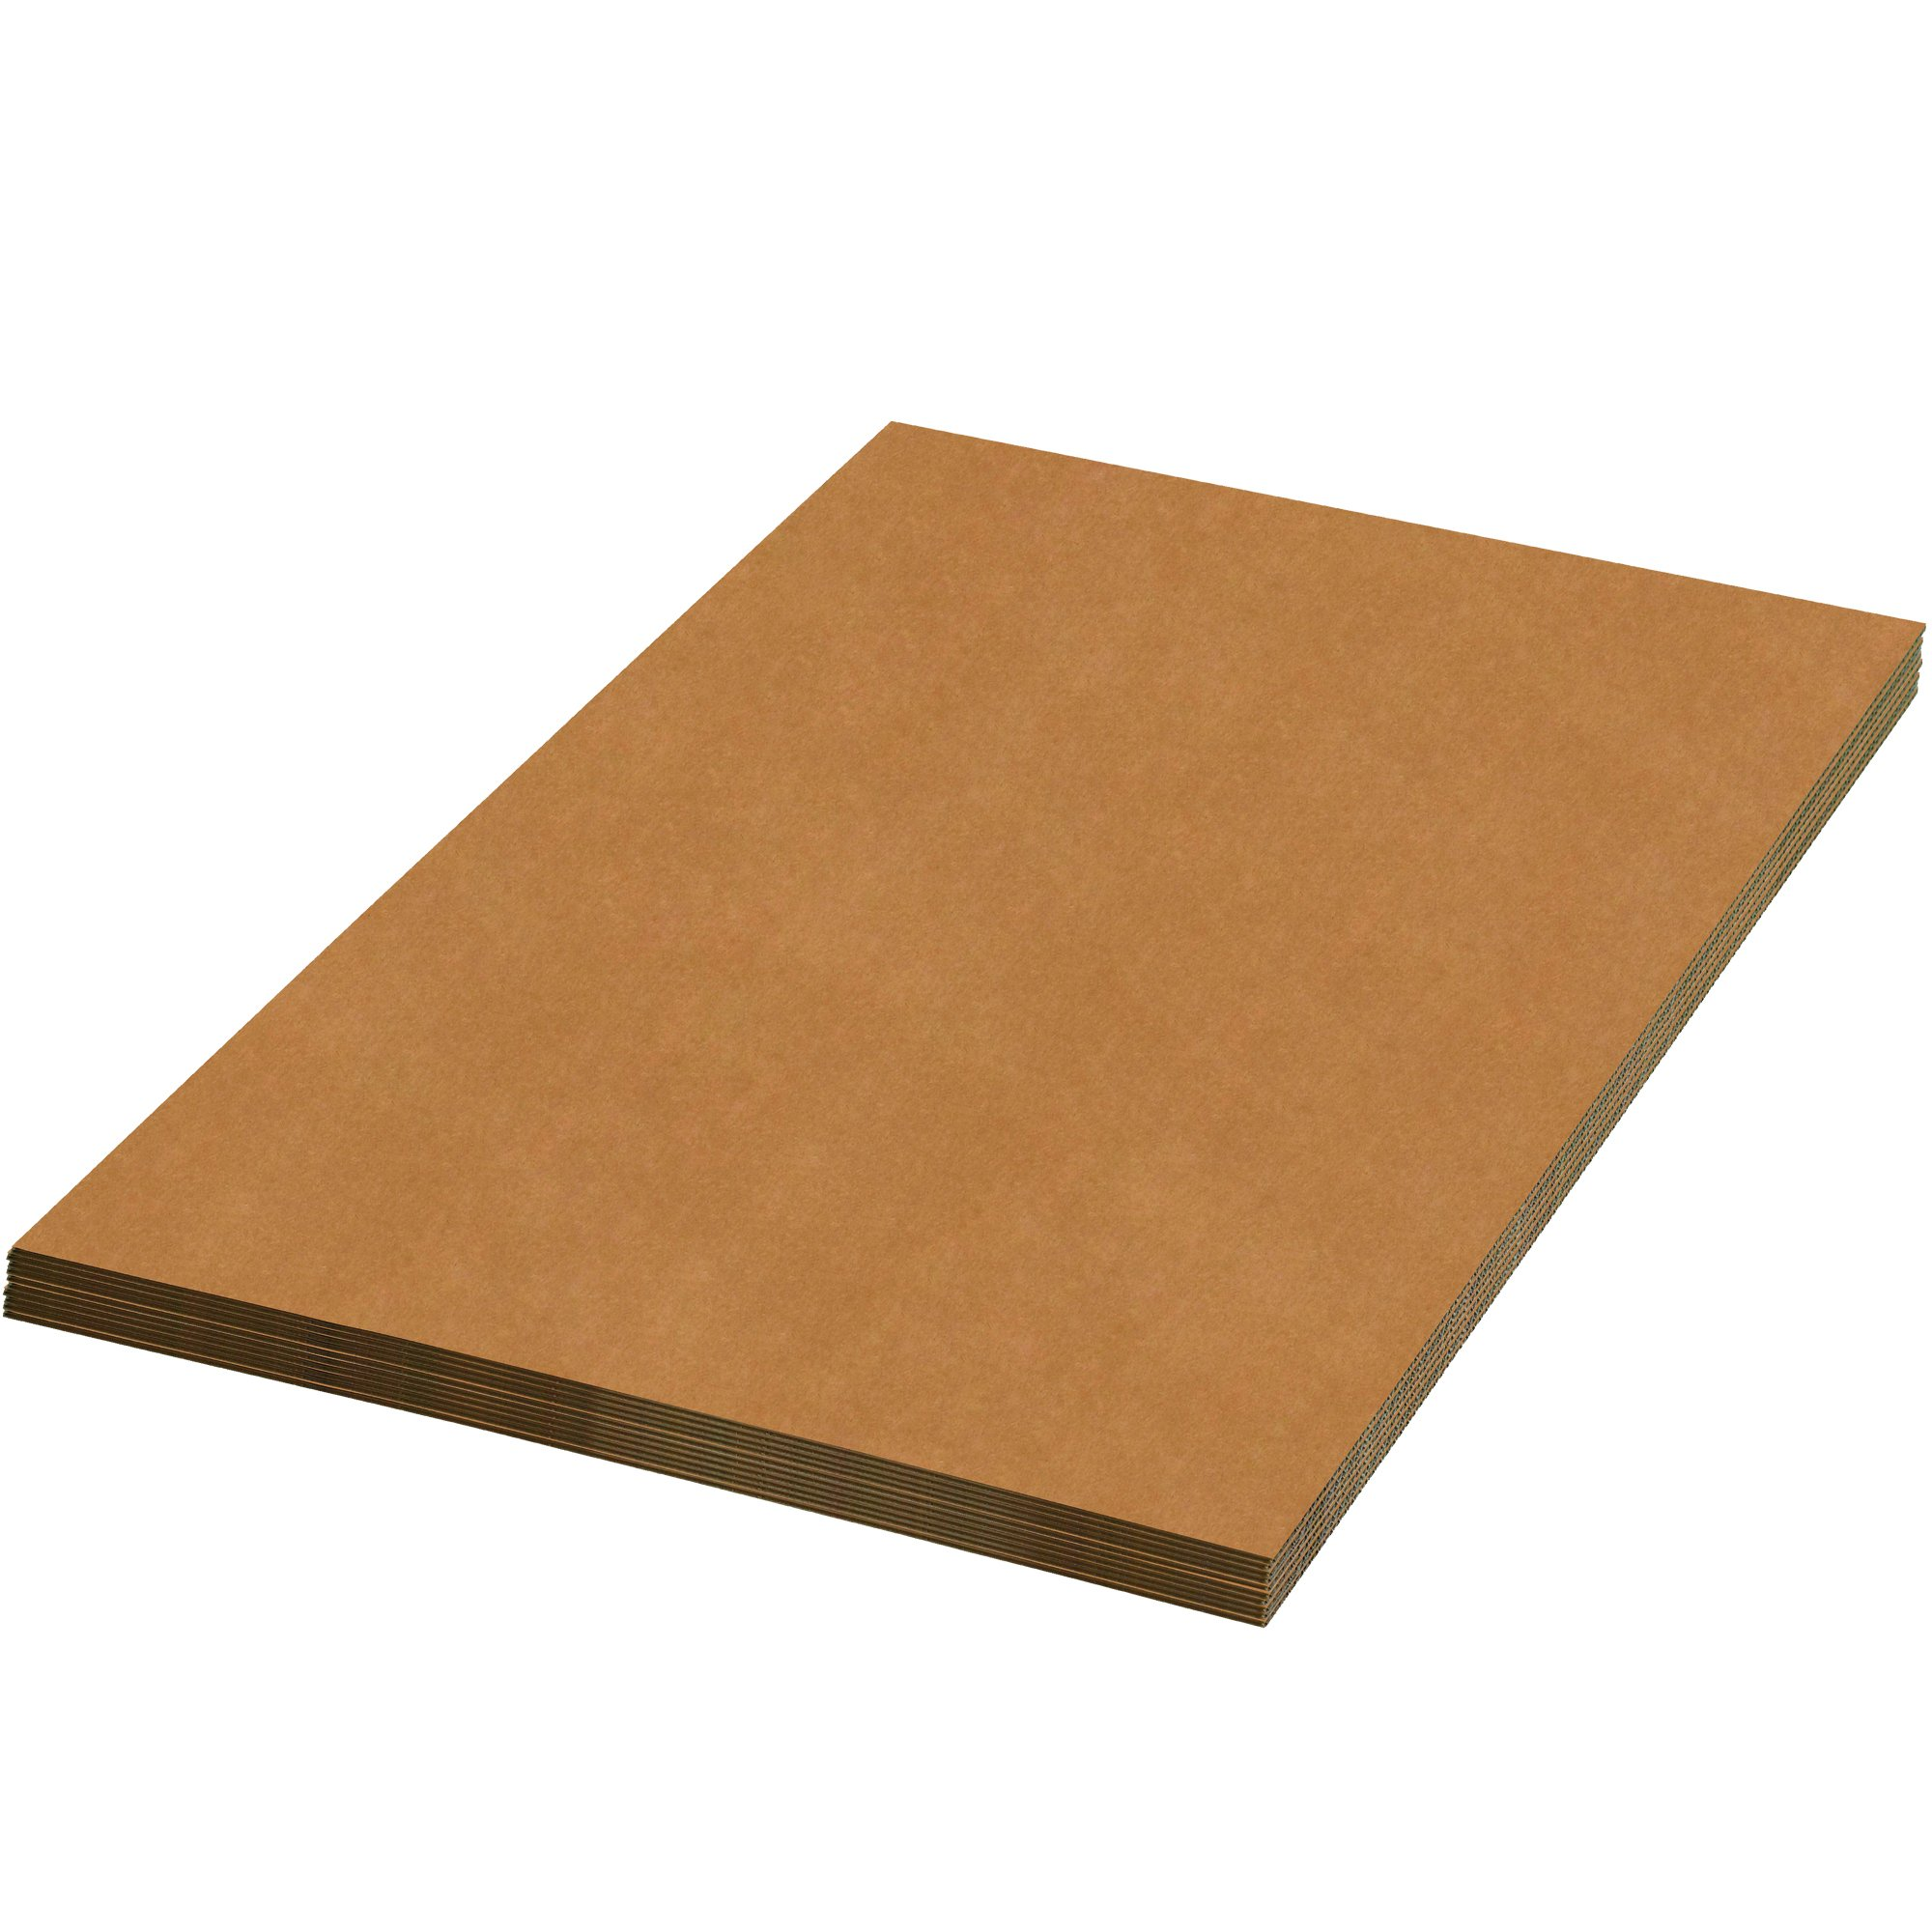 Partners Brand Corrugated Sheets by Partners Brand